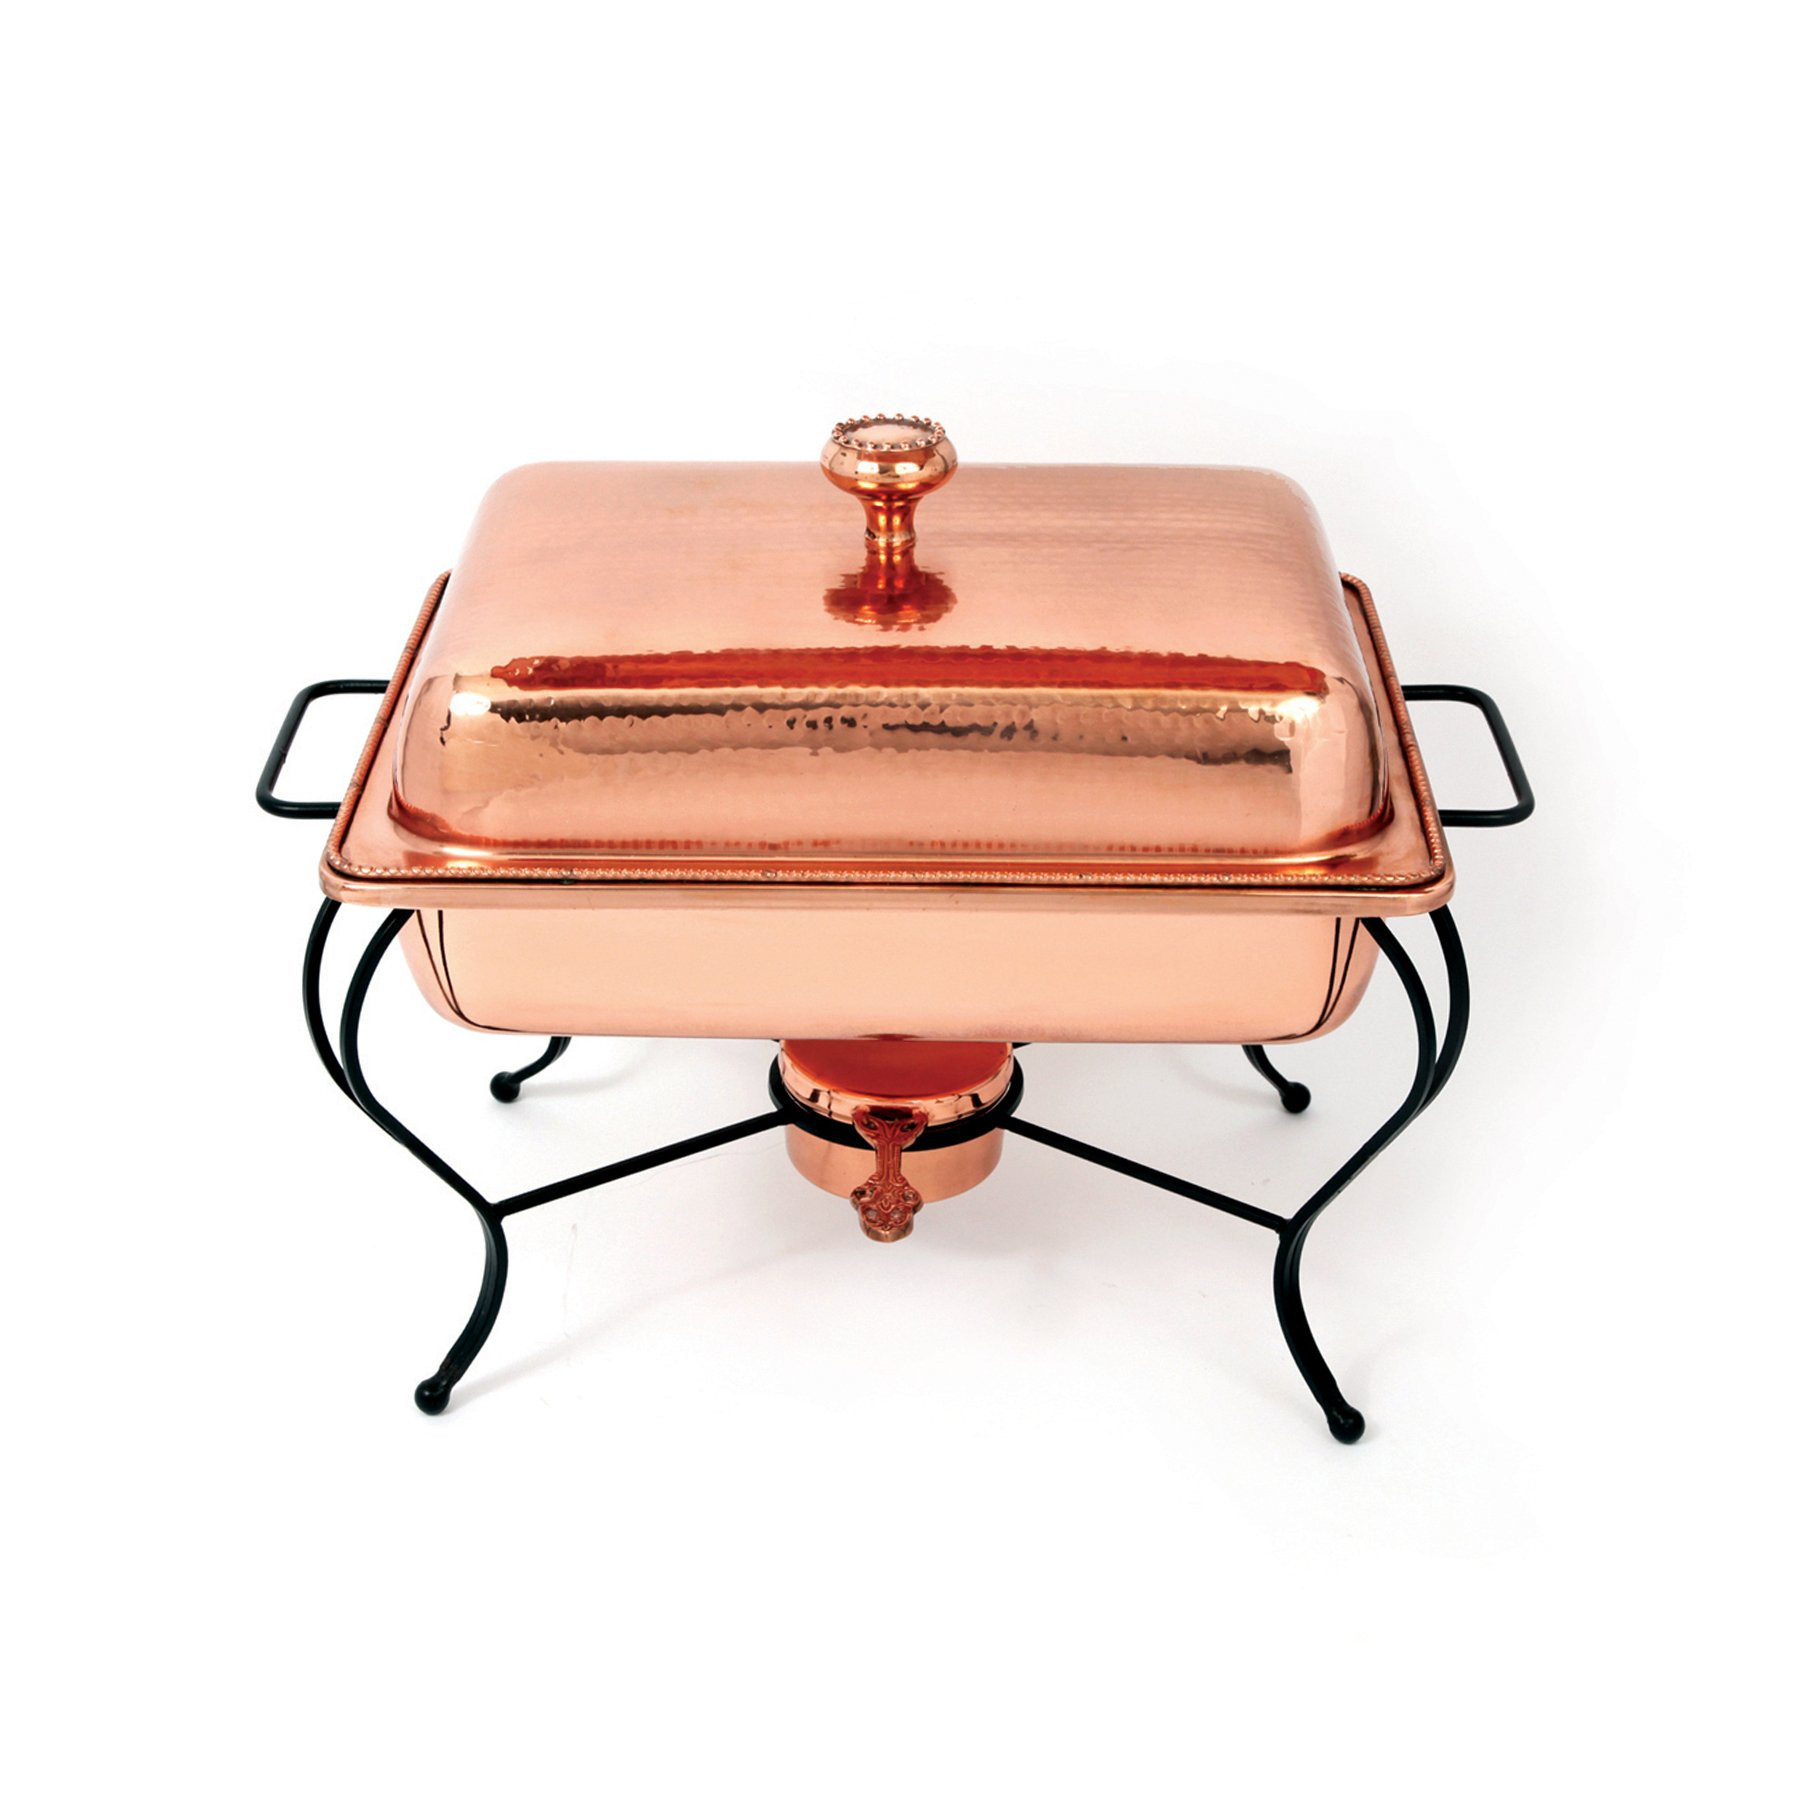 Star Home 4-Quart Rectangle Copper Plated Chafing Dish